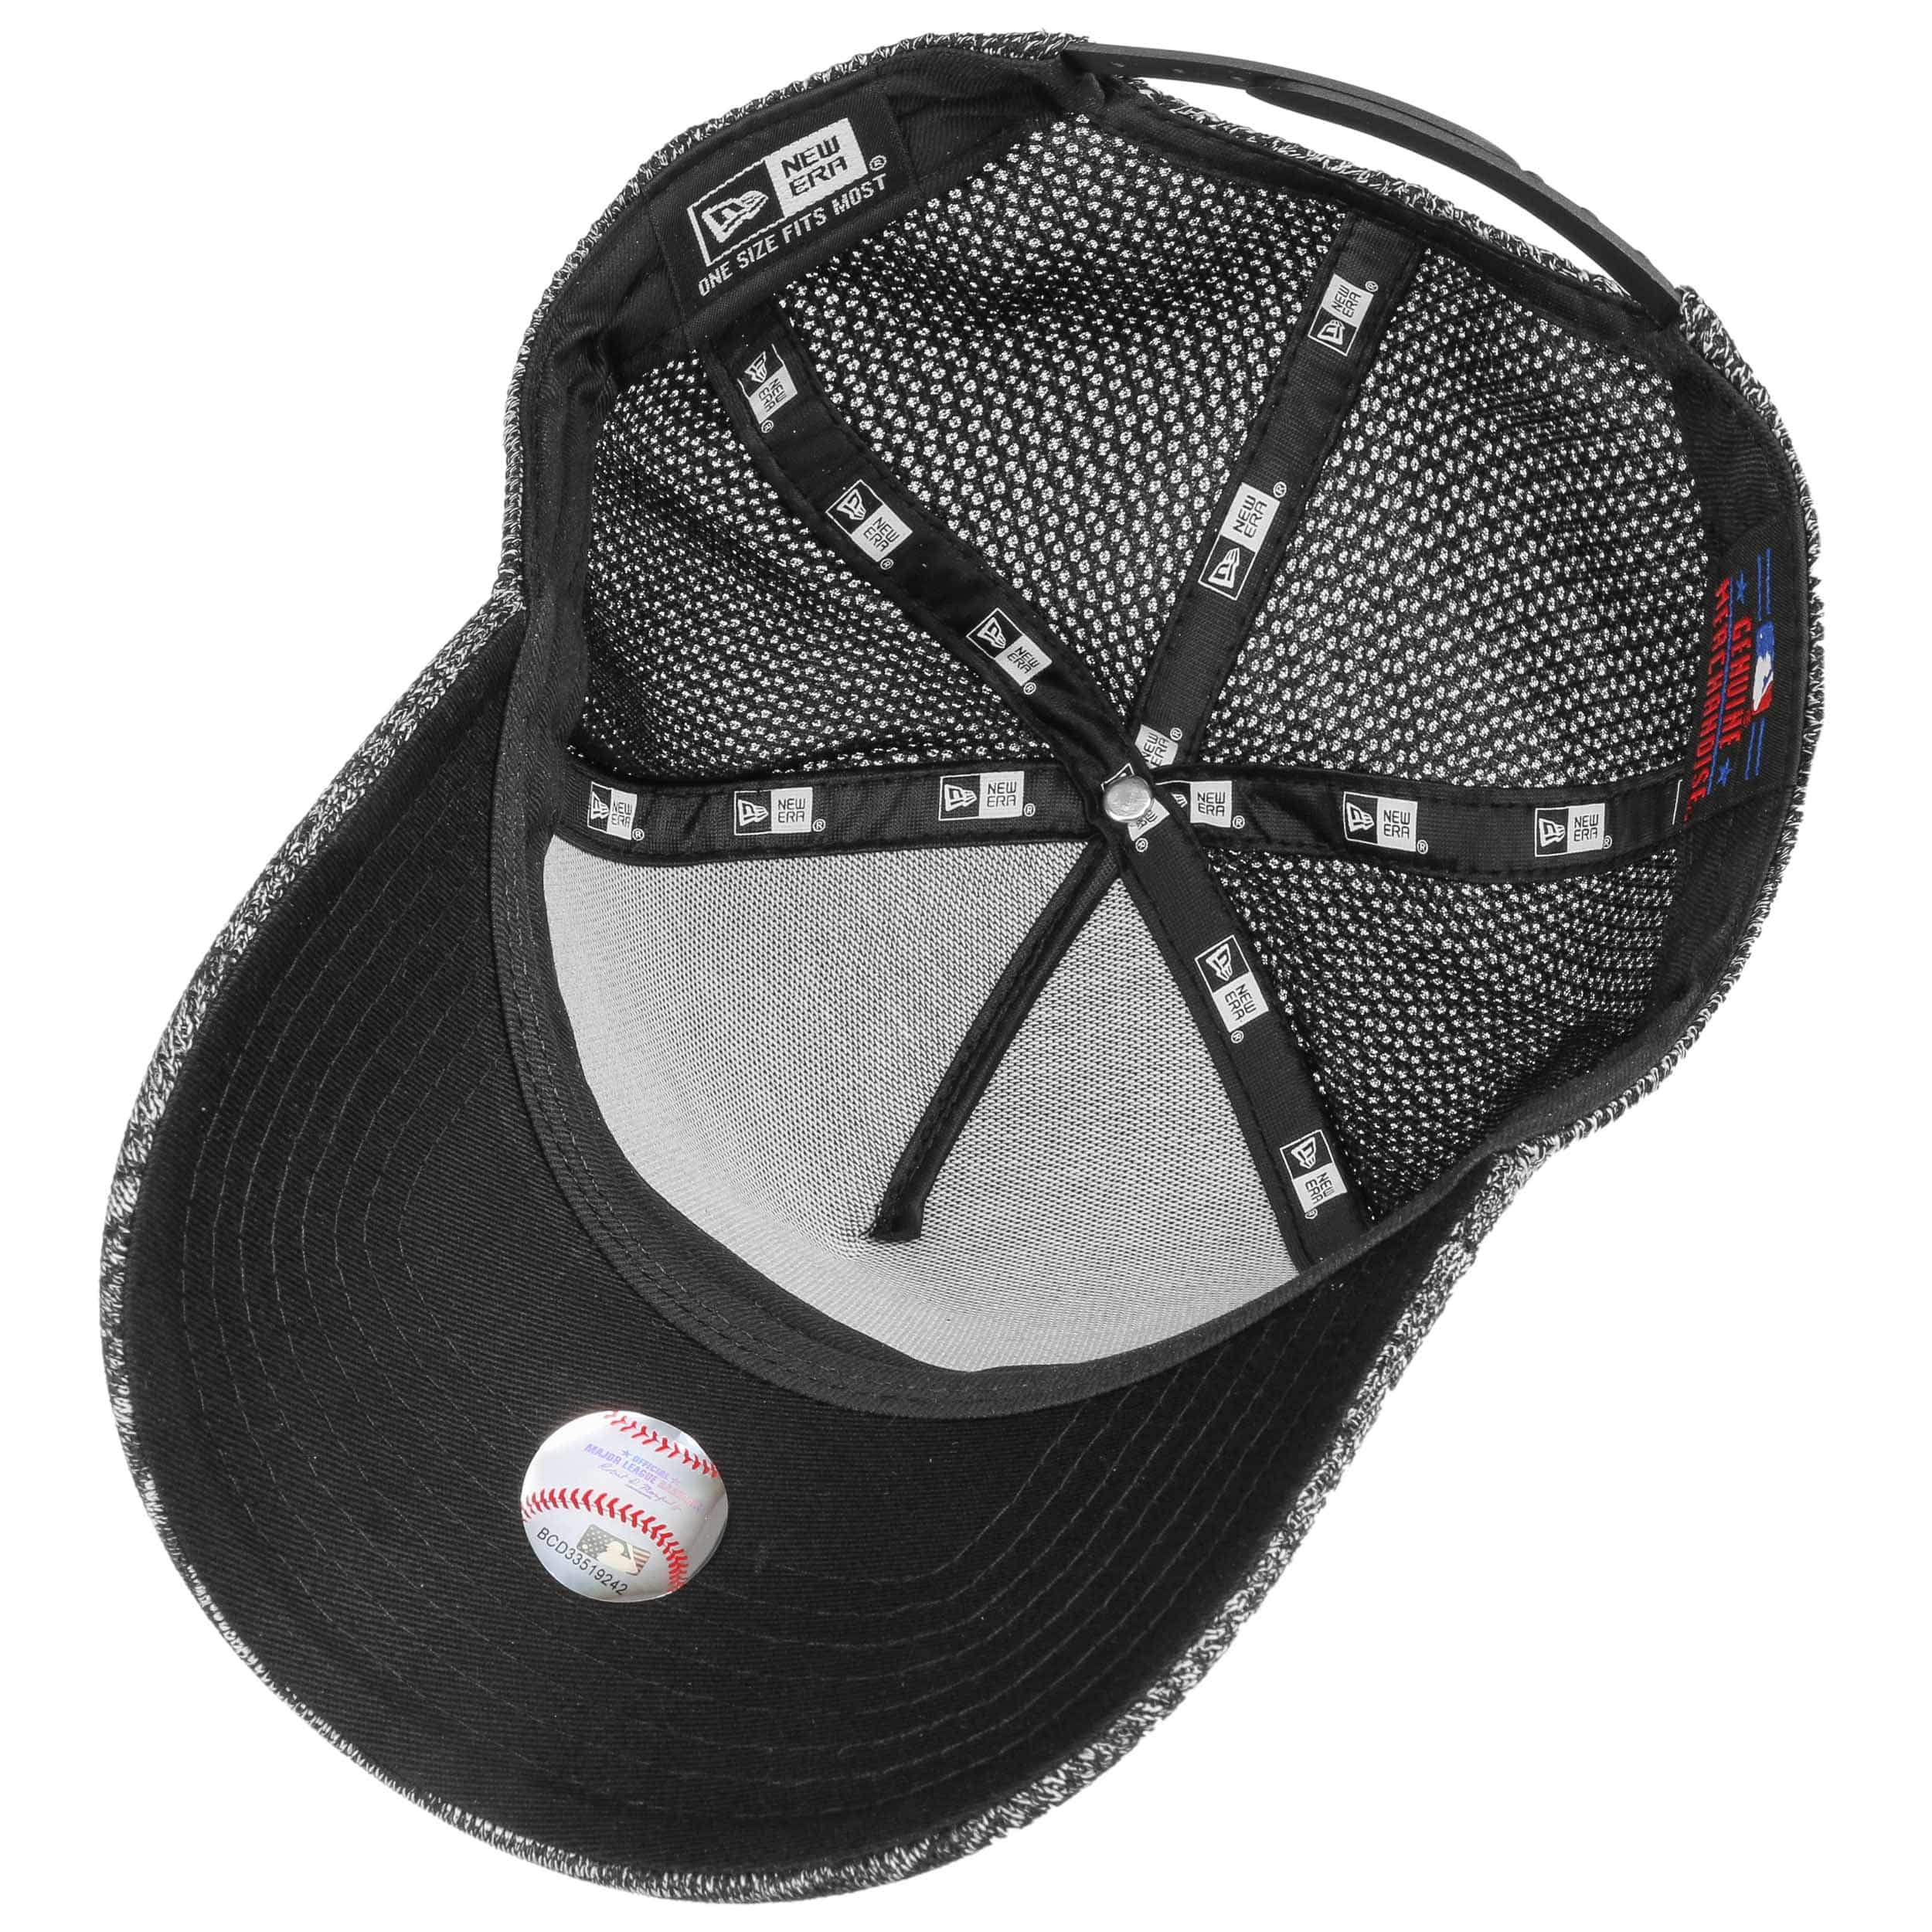 New Era MLB Boston Red Sox Engineered Fit Adjustable One Size Snapback Hat